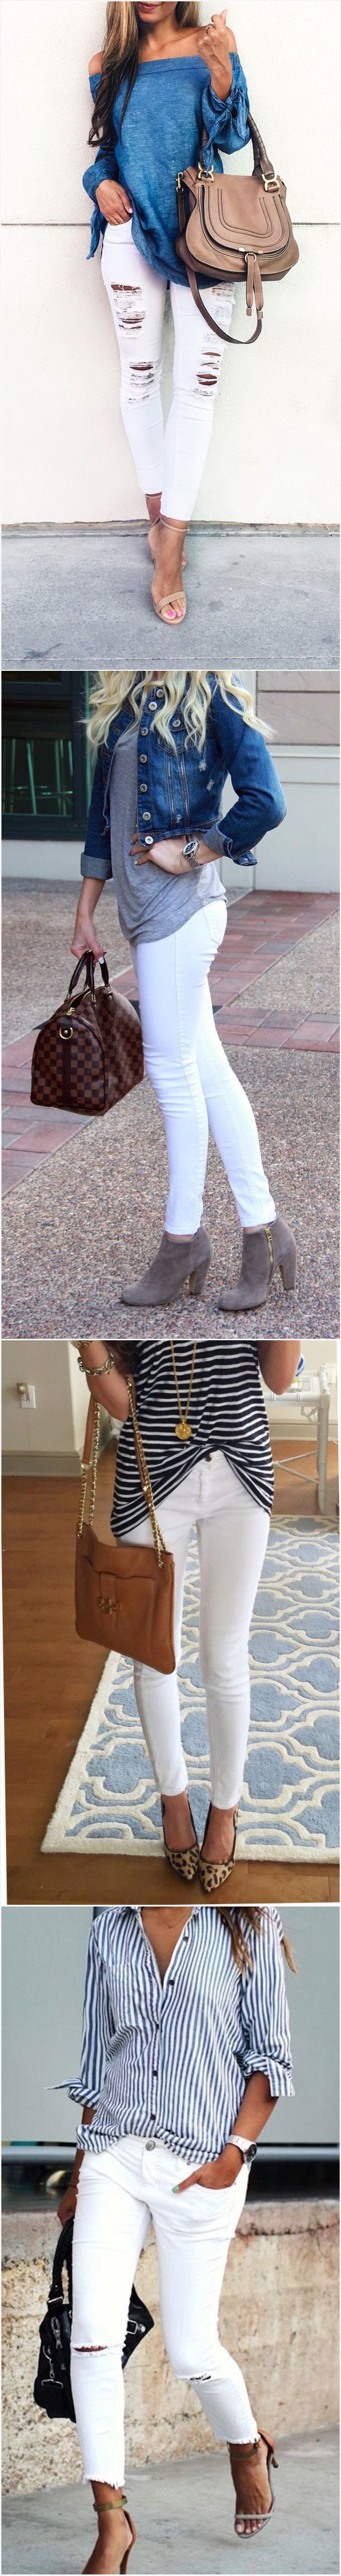 Whit skinny jeans  outfit ideas